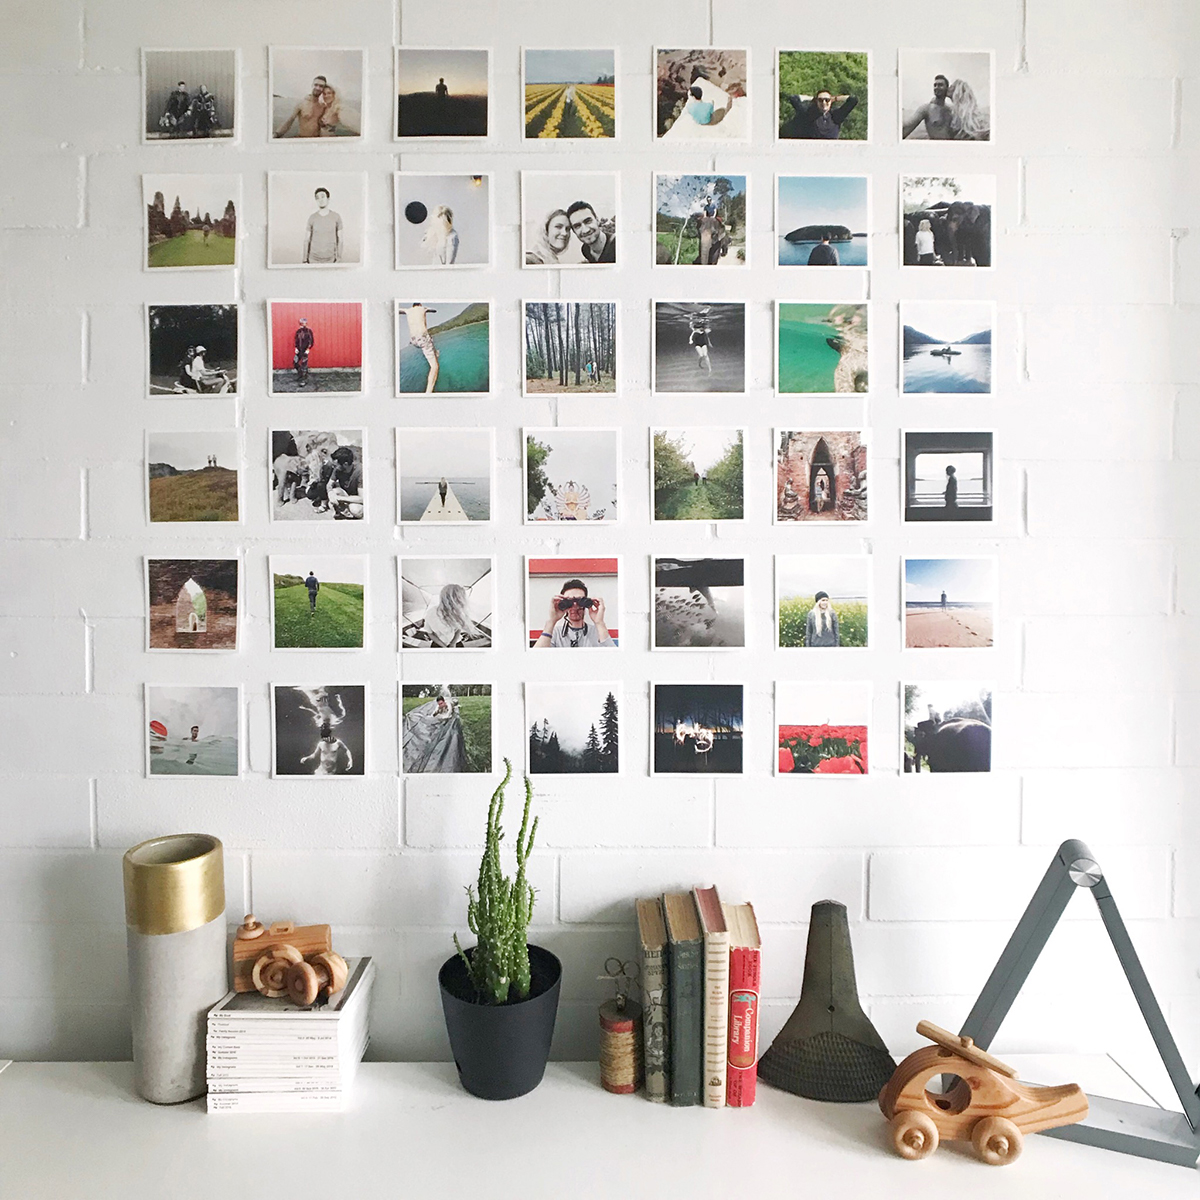 Artifact Uprising photo prints taped into a grid pattern on wall